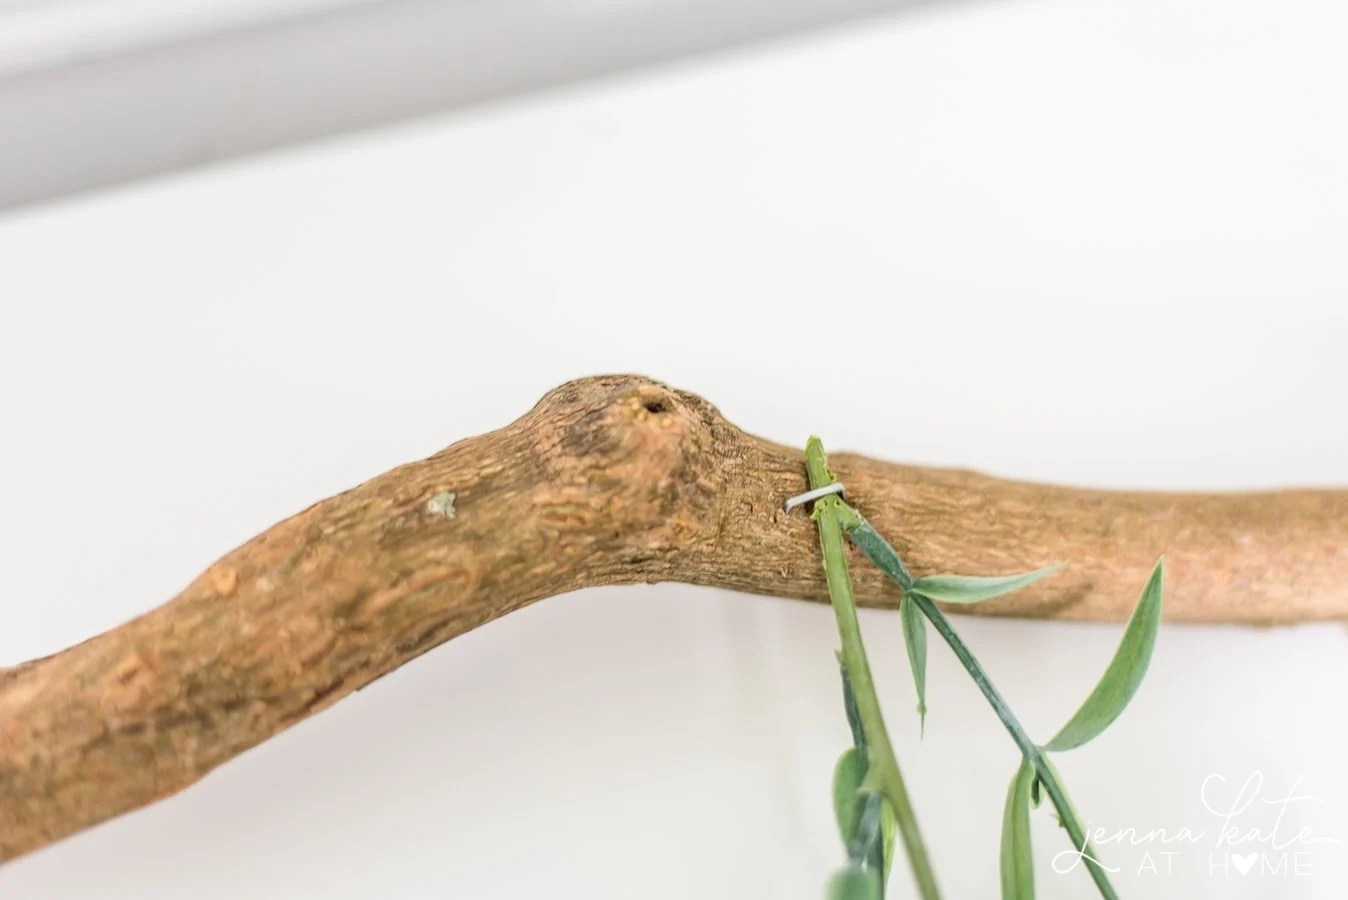 A close-up of the end of the clipped green garland seured to the branch with a heavy-duty staple